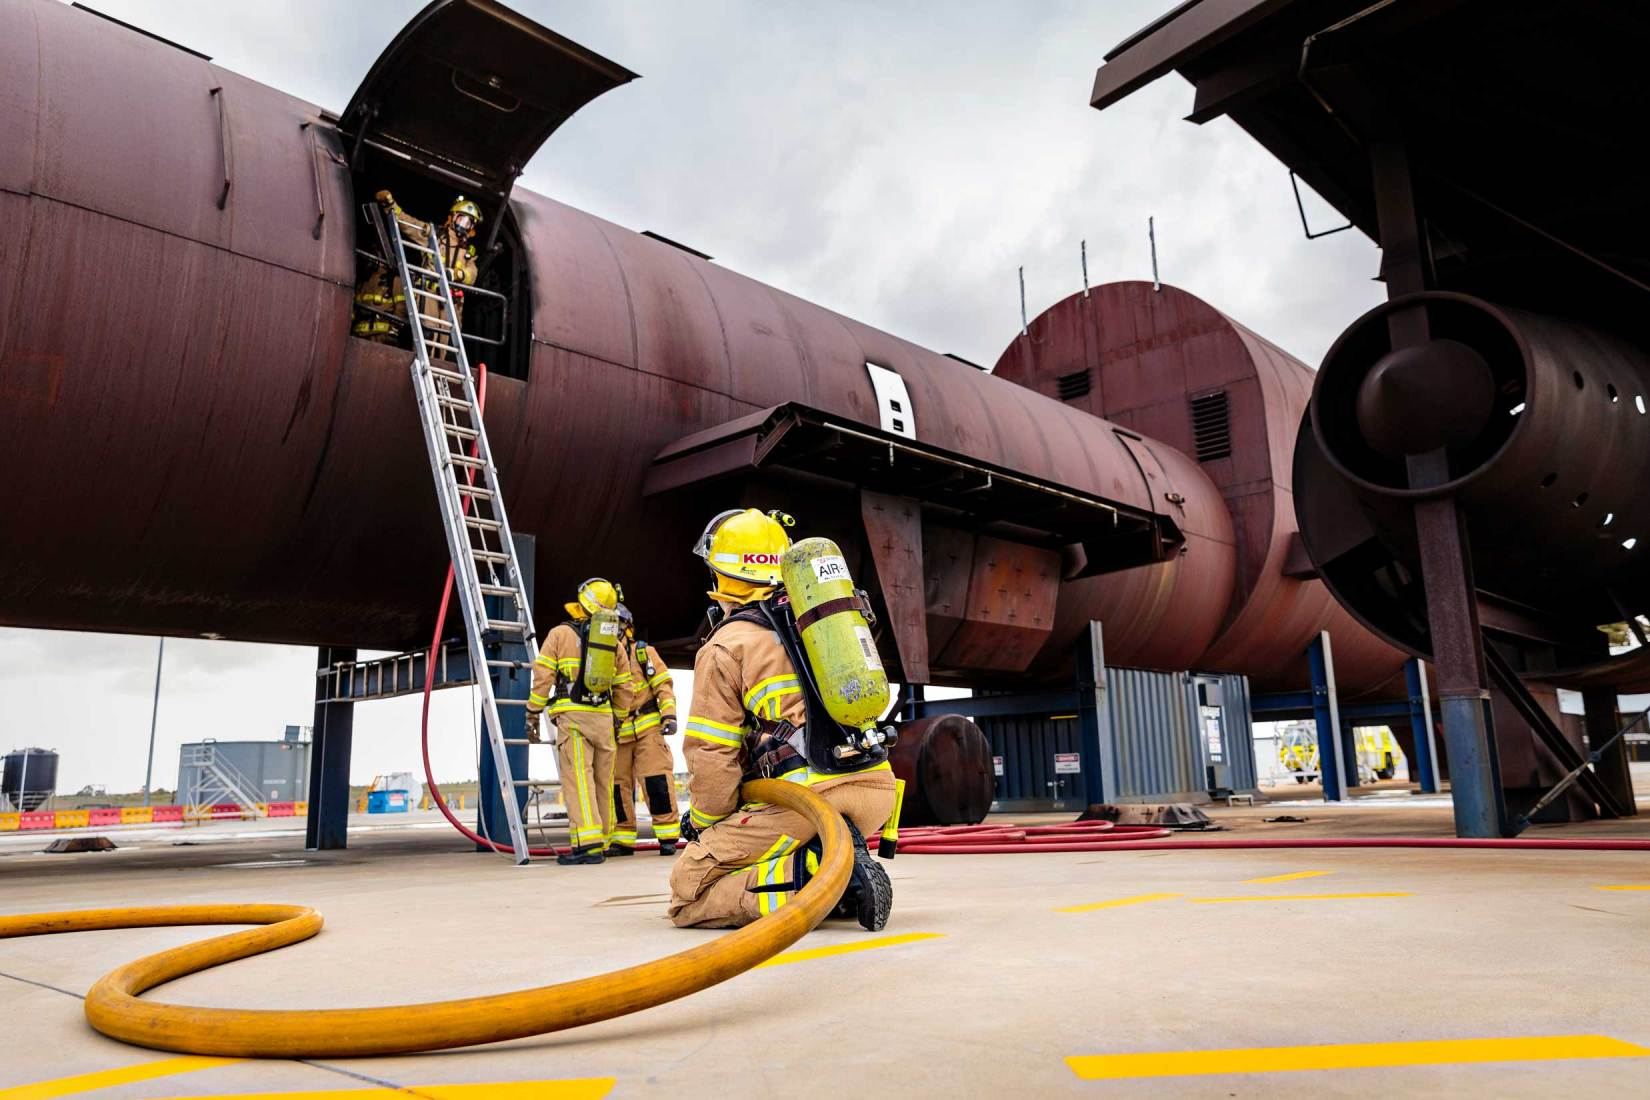 18106-3601-Image-Workshop-Melbourne-firefighter-fire-fighting-photography